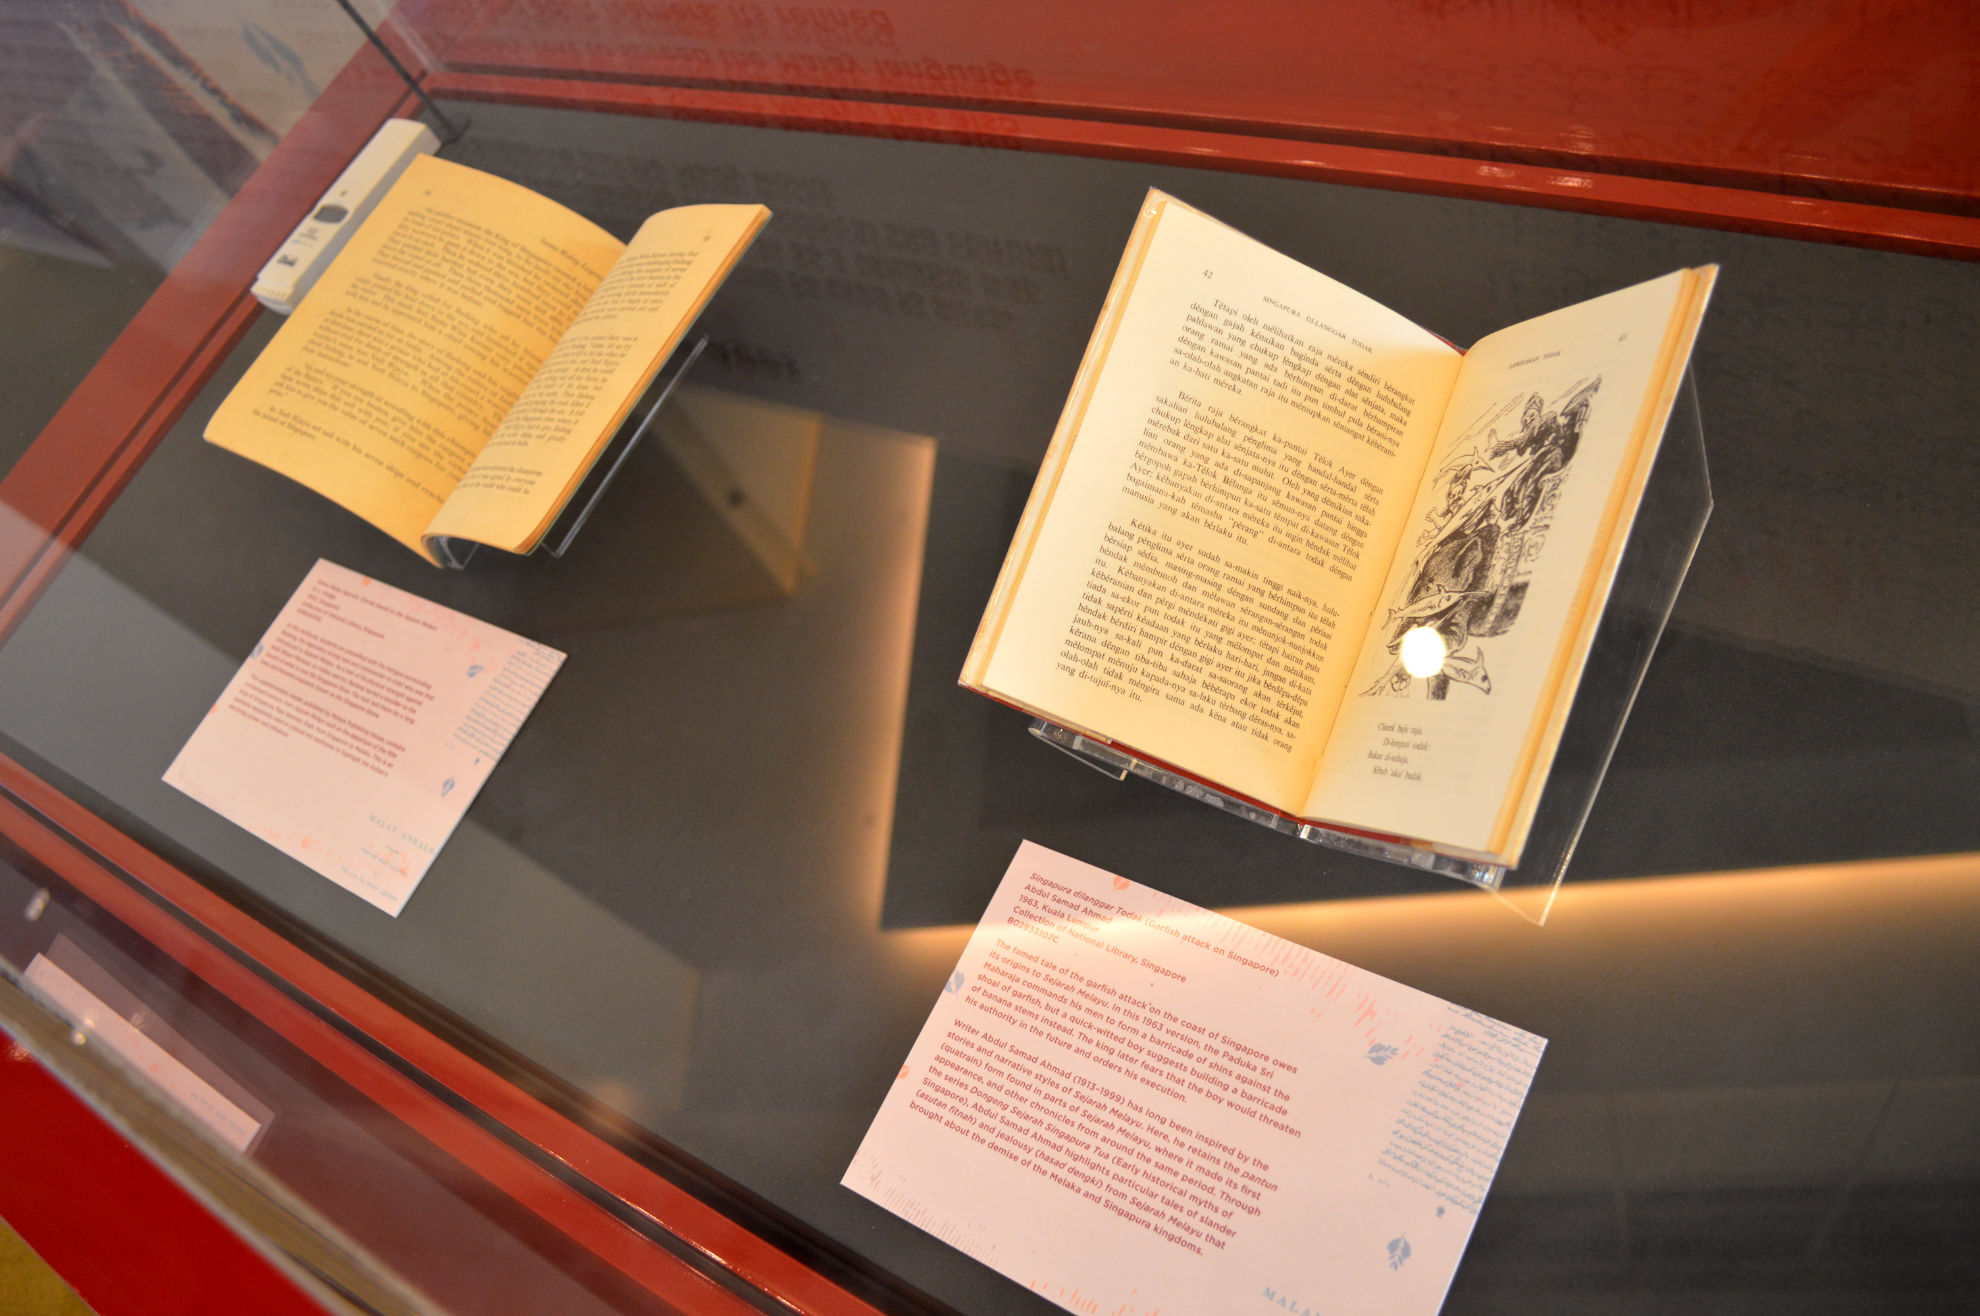 Photo close-up of the opened books within the showcase. There is a black and white illustration on one of the pages.